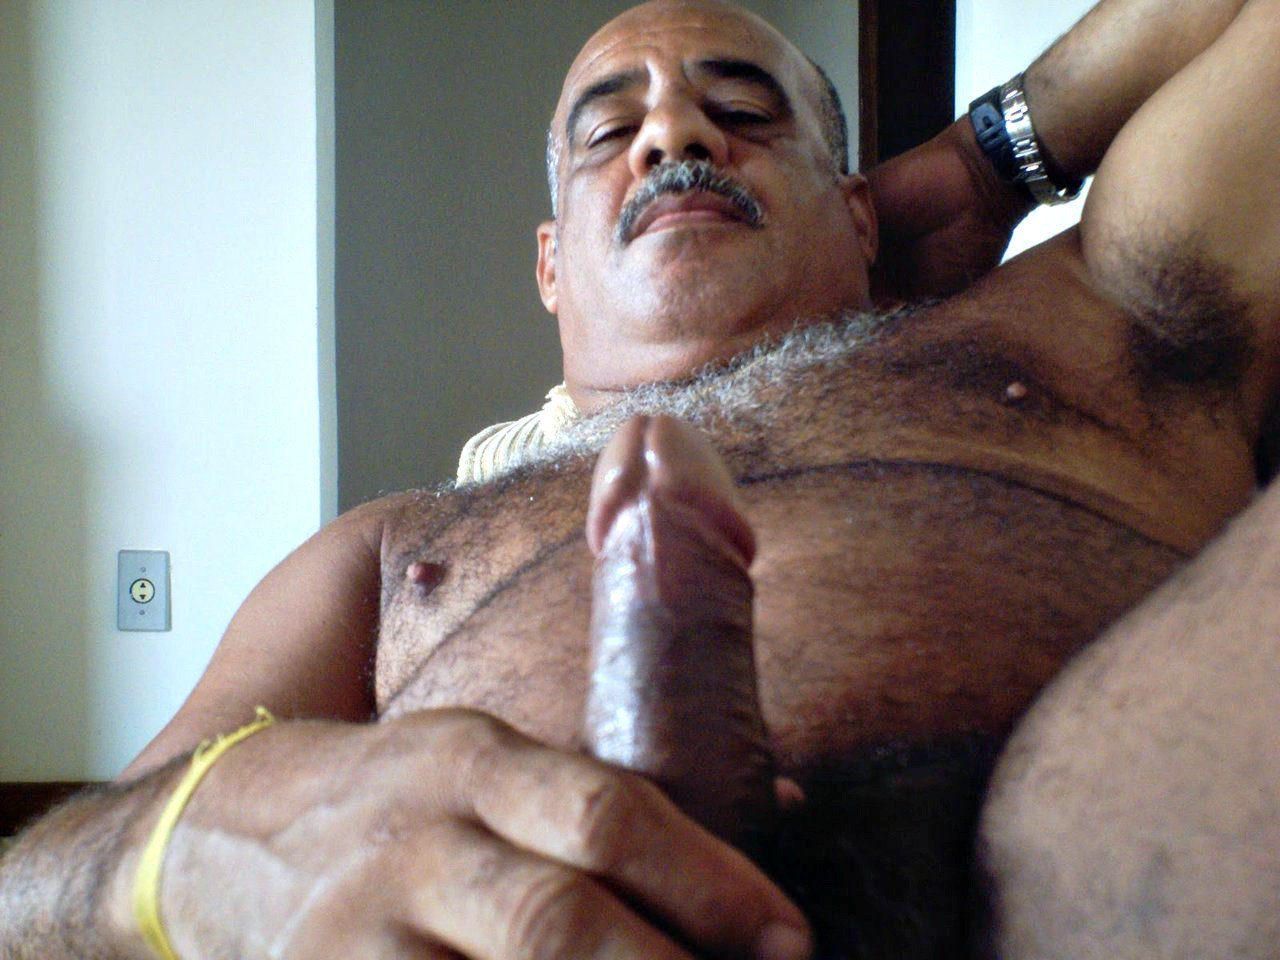 Abuelos Gey Porno allow pop up to see video gay daddy maduros on twitter